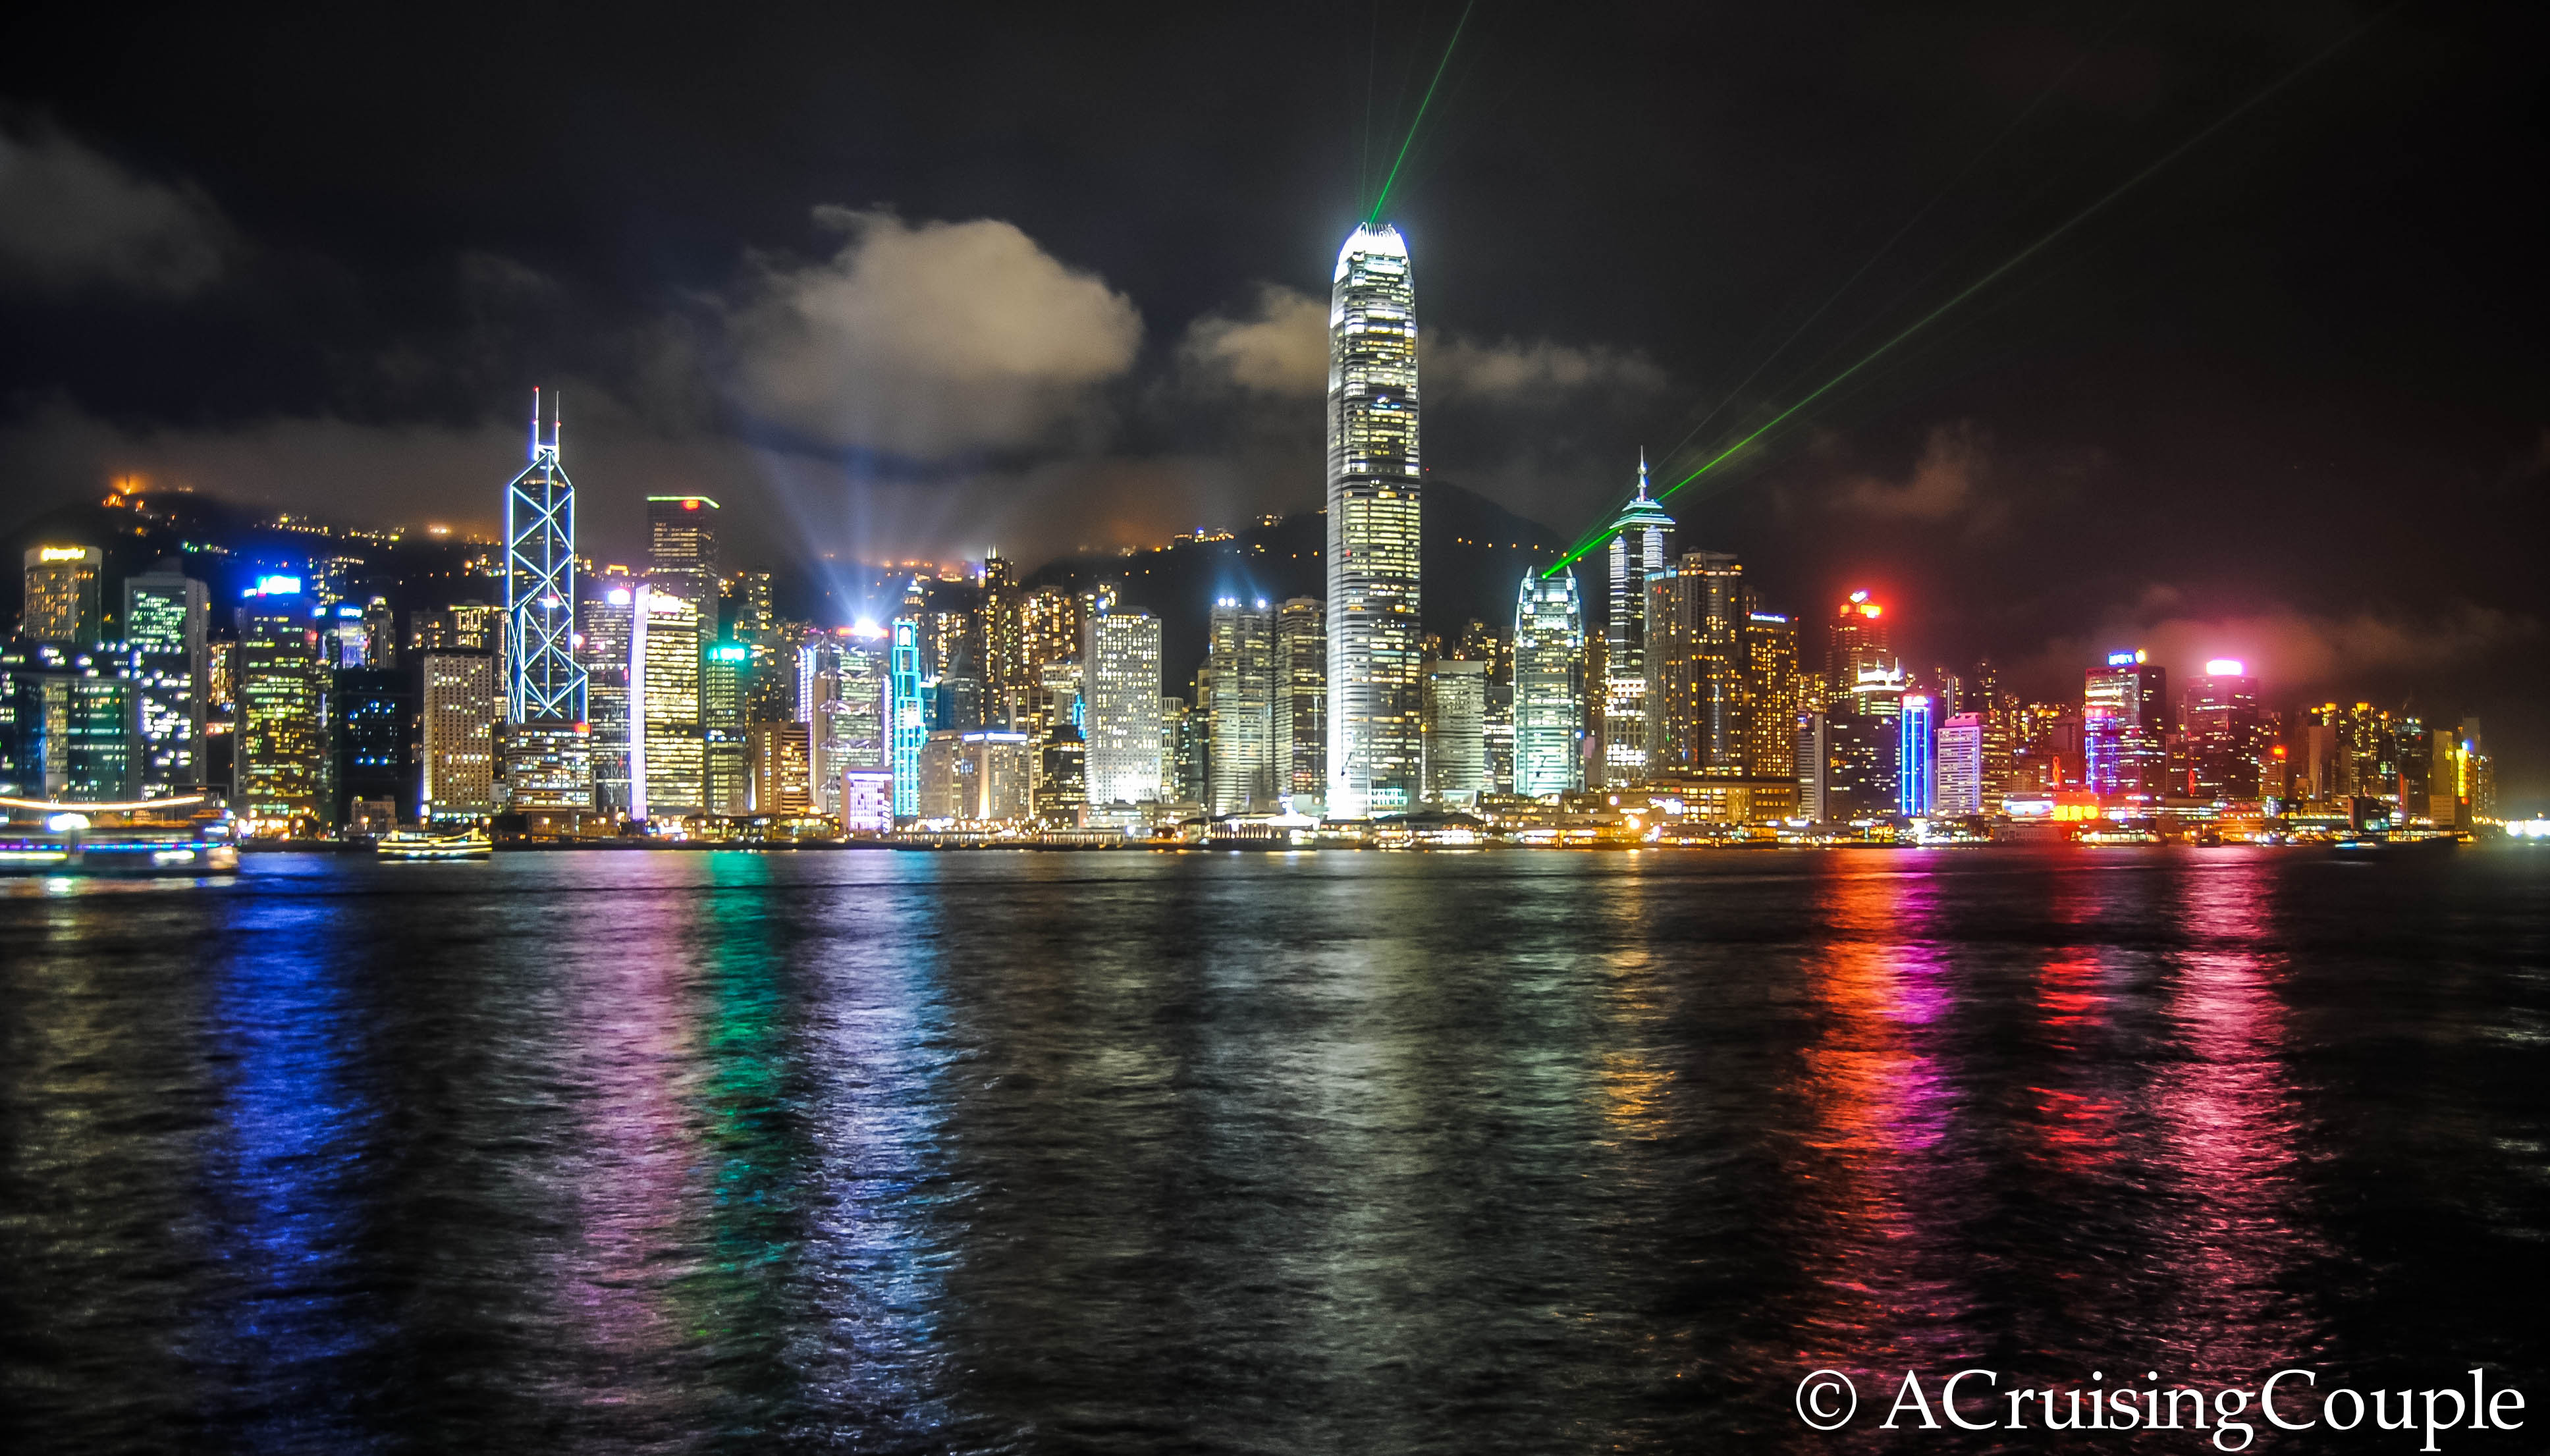 Symphony-of-the-Stars-Tsim-Sha-Tsui-Victoria-Harbor-Hong-Kong-Skyline Kebiasaan Menang Permainan Togel Di internet Ulung